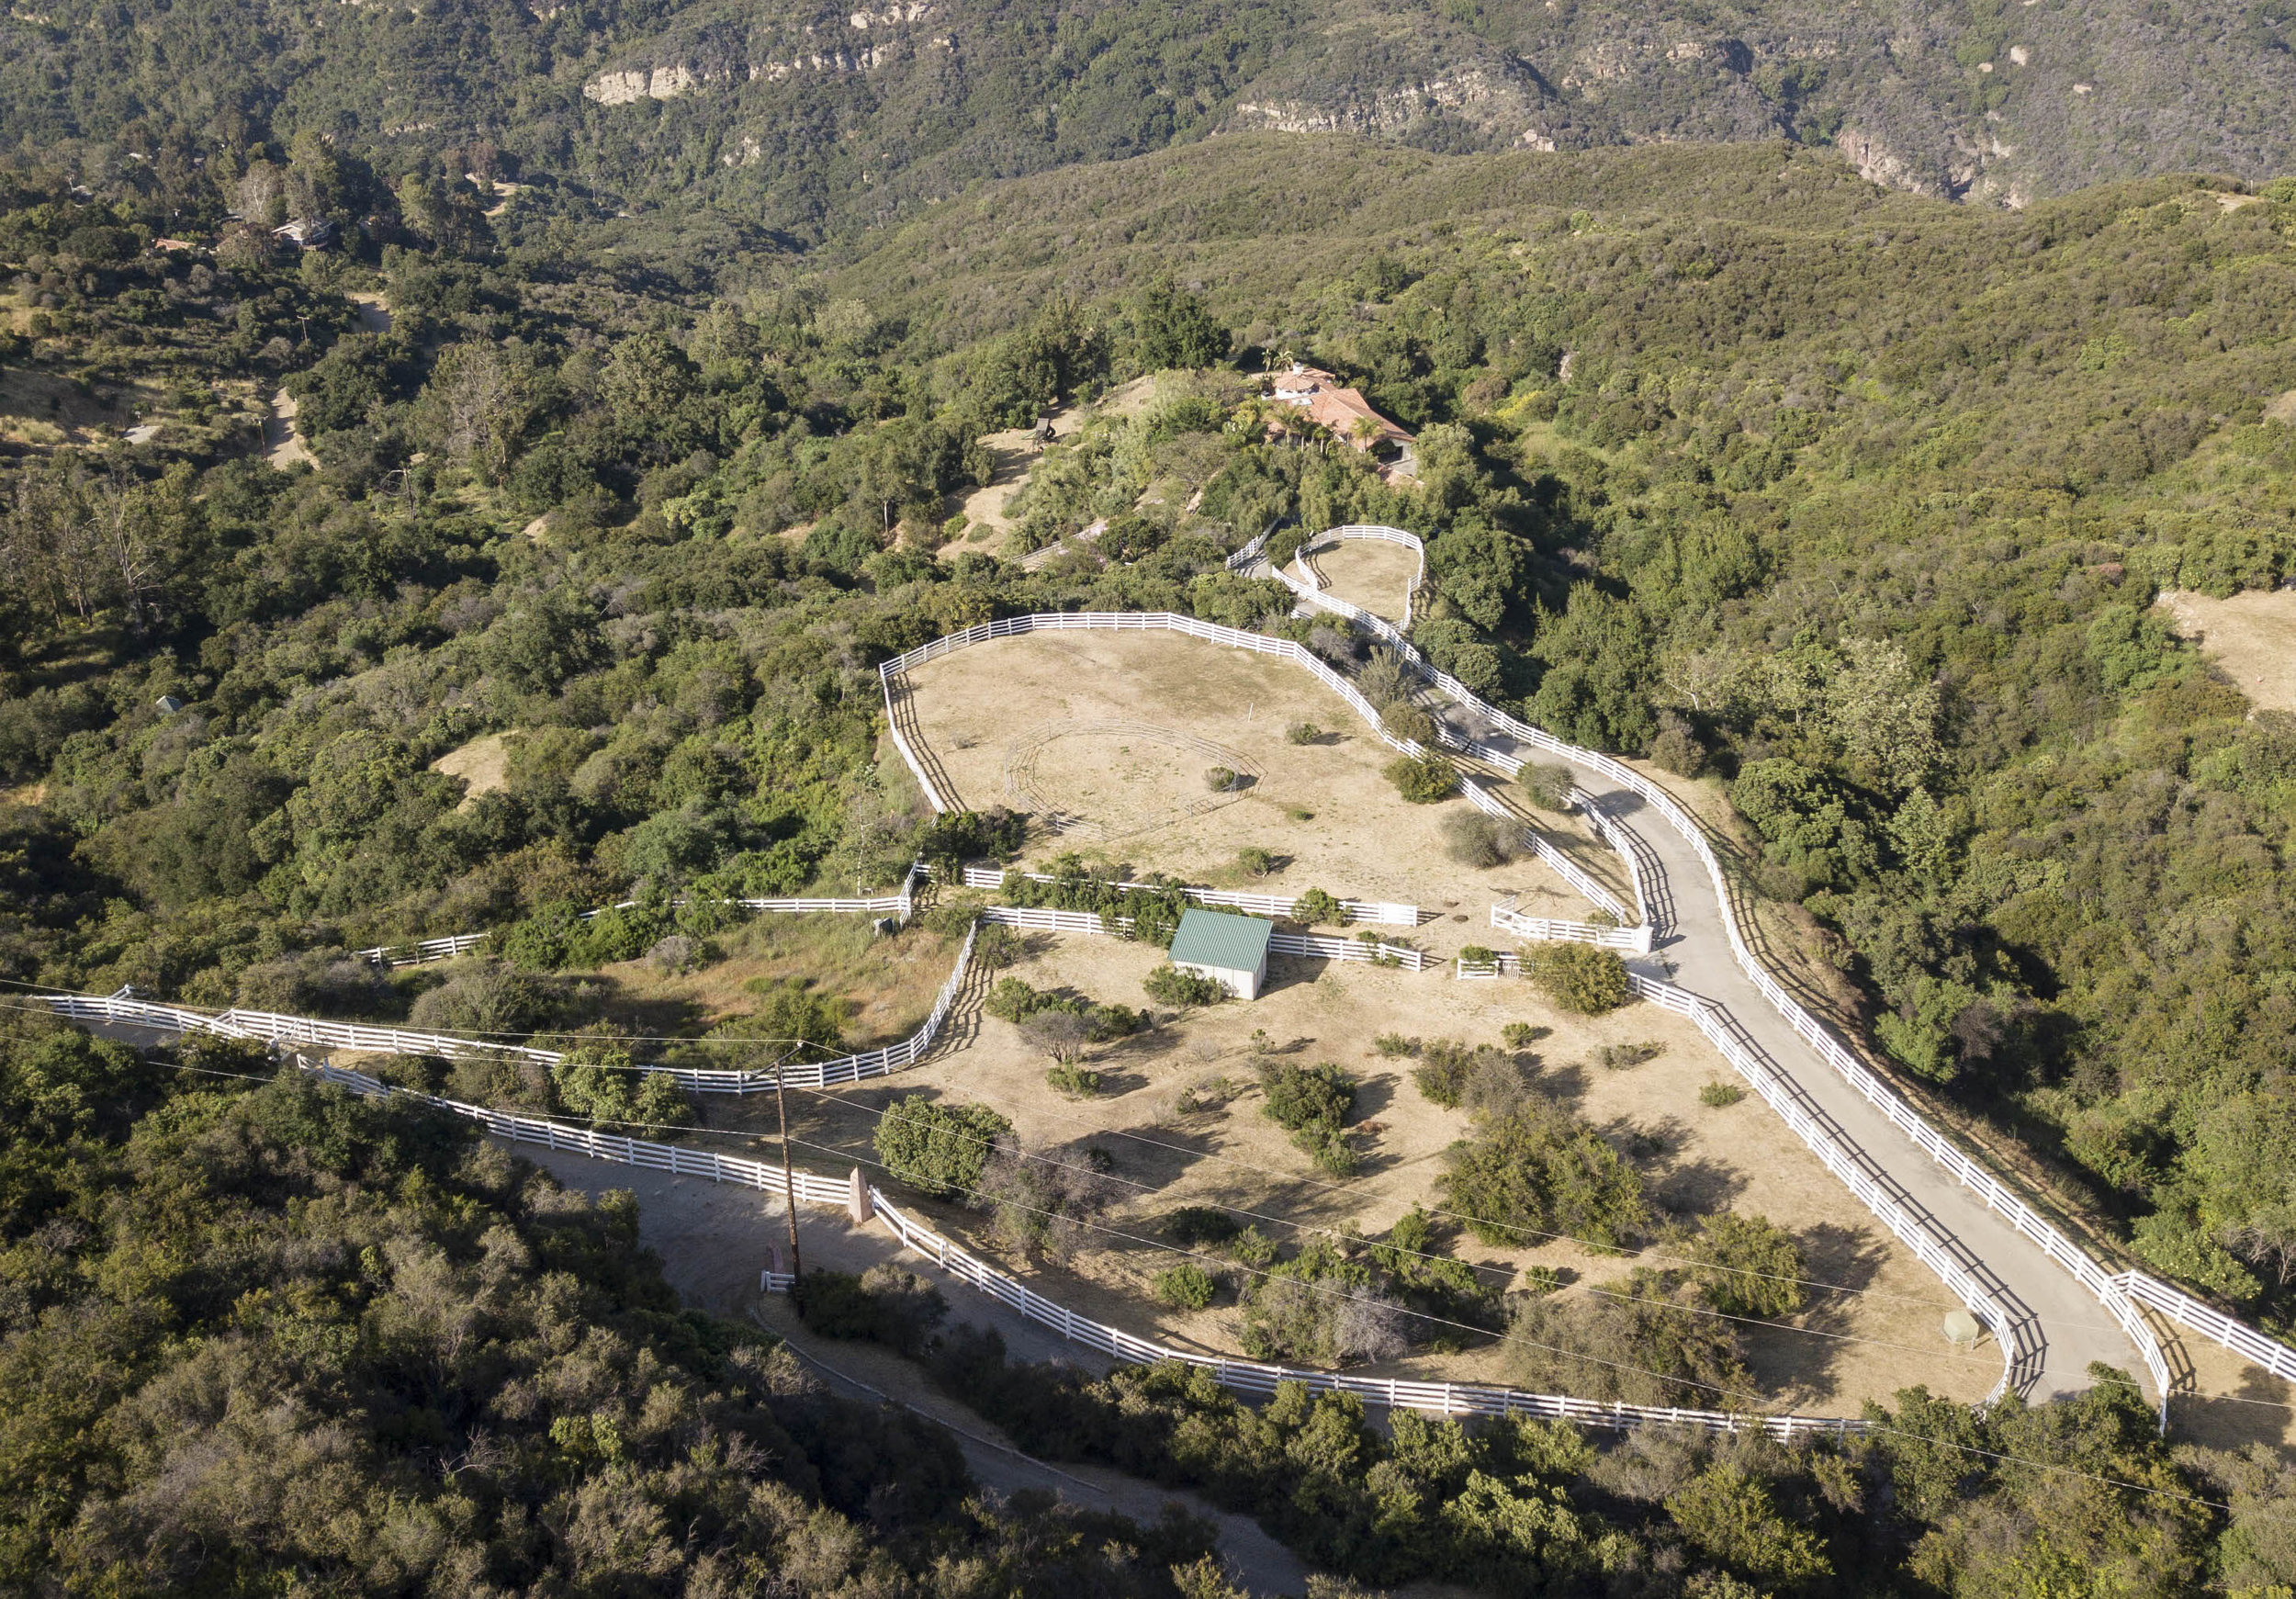 002 20333 Reigate Road Topanga For Sale Lease The Malibu Life Team Luxury Real Estate.jpg